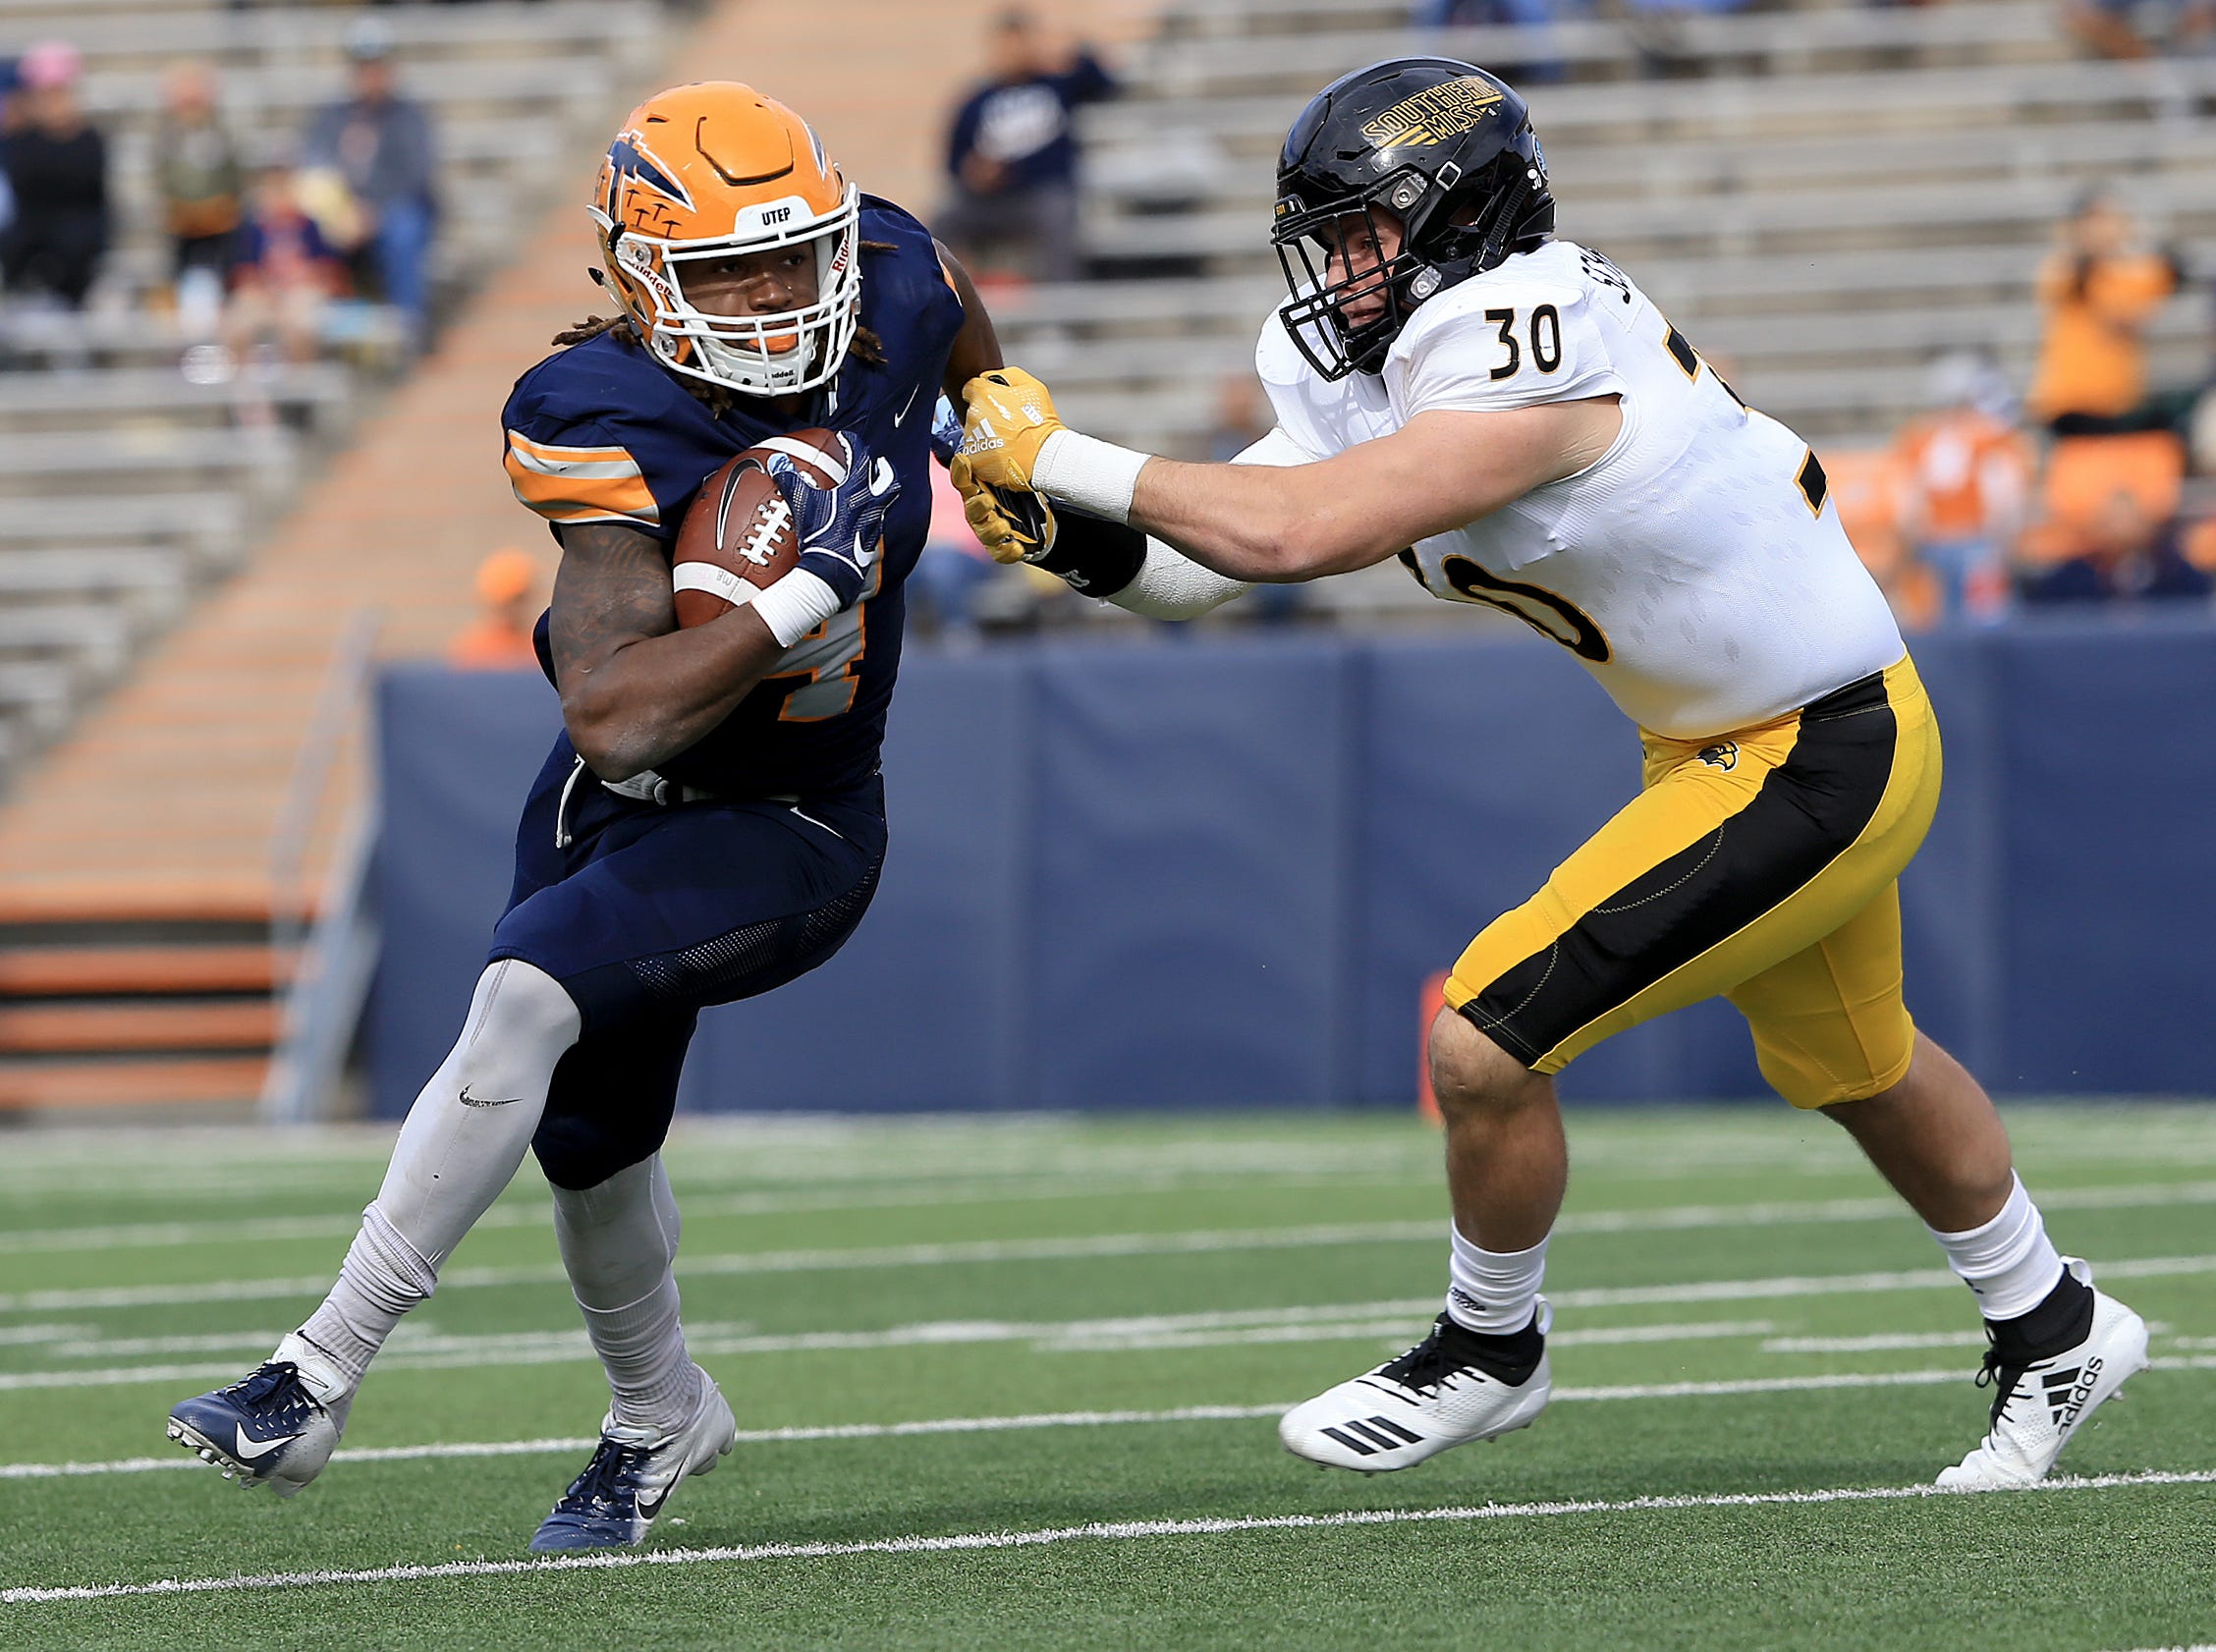 UTEP ended their season with a 39-7 loss to Southern Miss at the Sun Bowl. UTEP seniors were joined by their families on the field prior to the game and were treated to a senior video following the game.